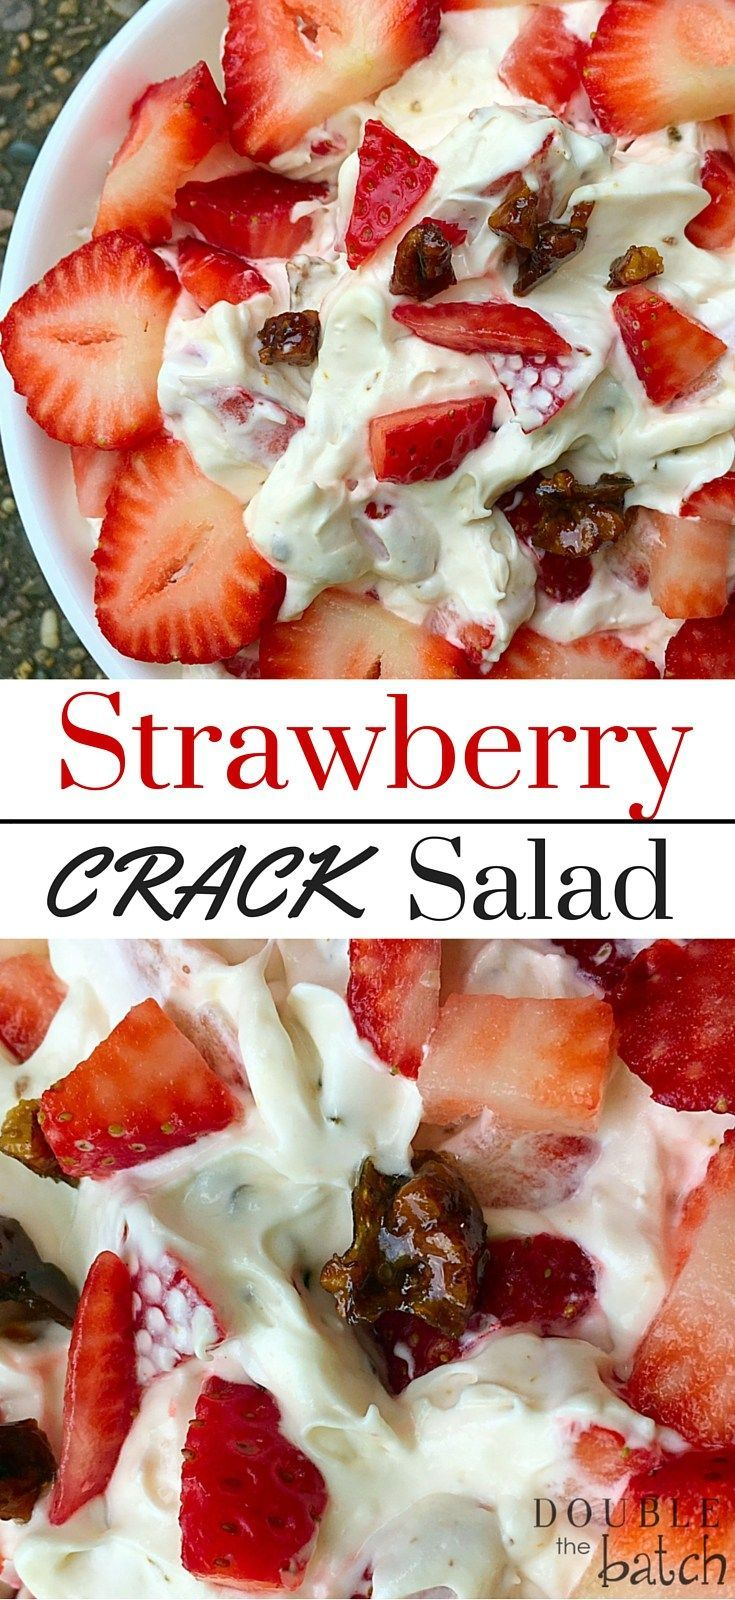 This is absolutely the BEST potluck dessert salad I have everh had! IF you love strawberries, then this strawberriy dessert salad with toffee will make your tastebuds sing!